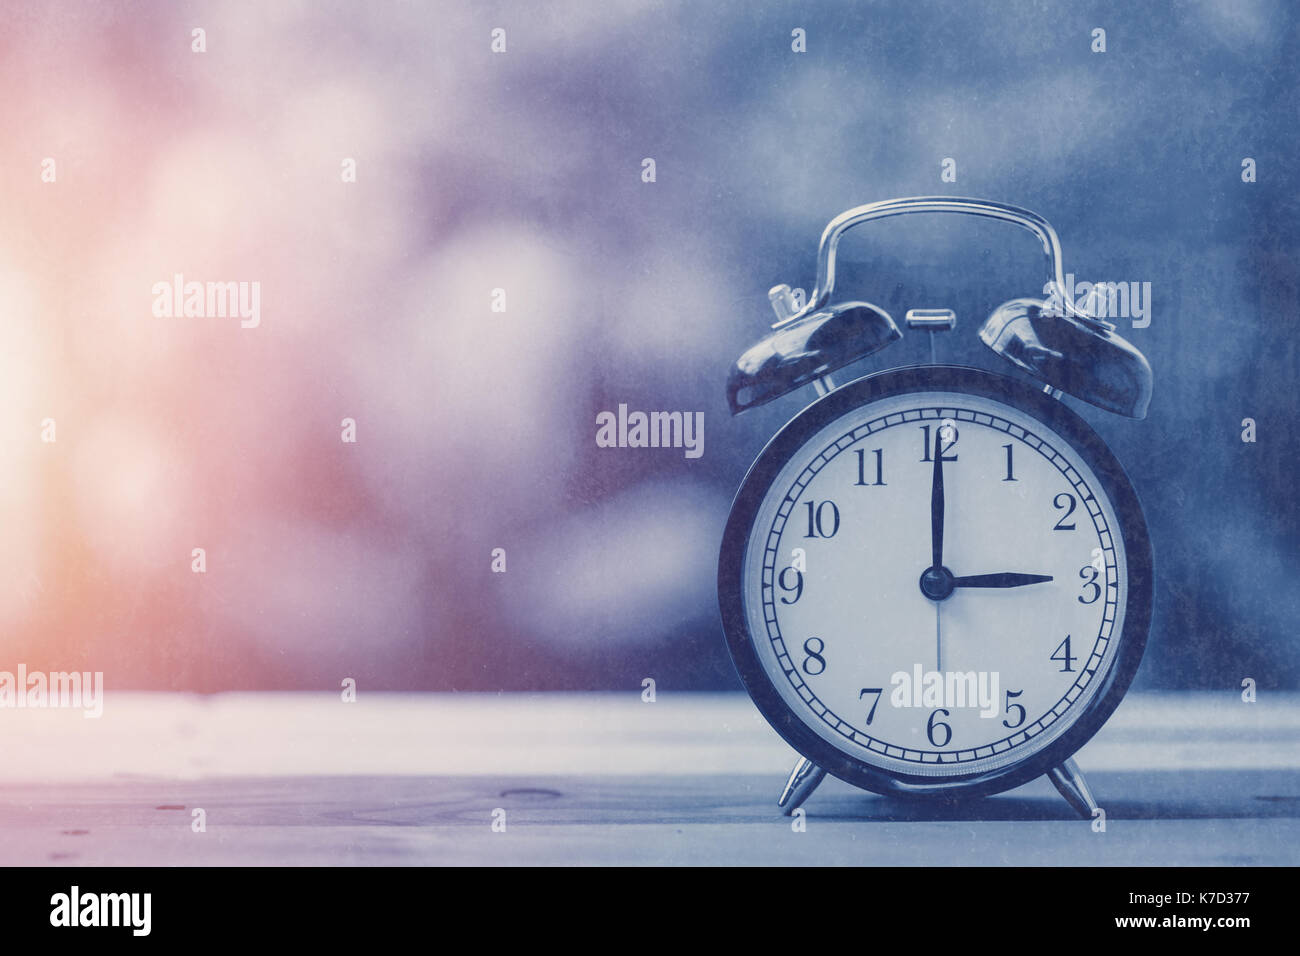 3 o'clock old retro clock blue vintage color tone with old grungy texture overlay - Stock Image